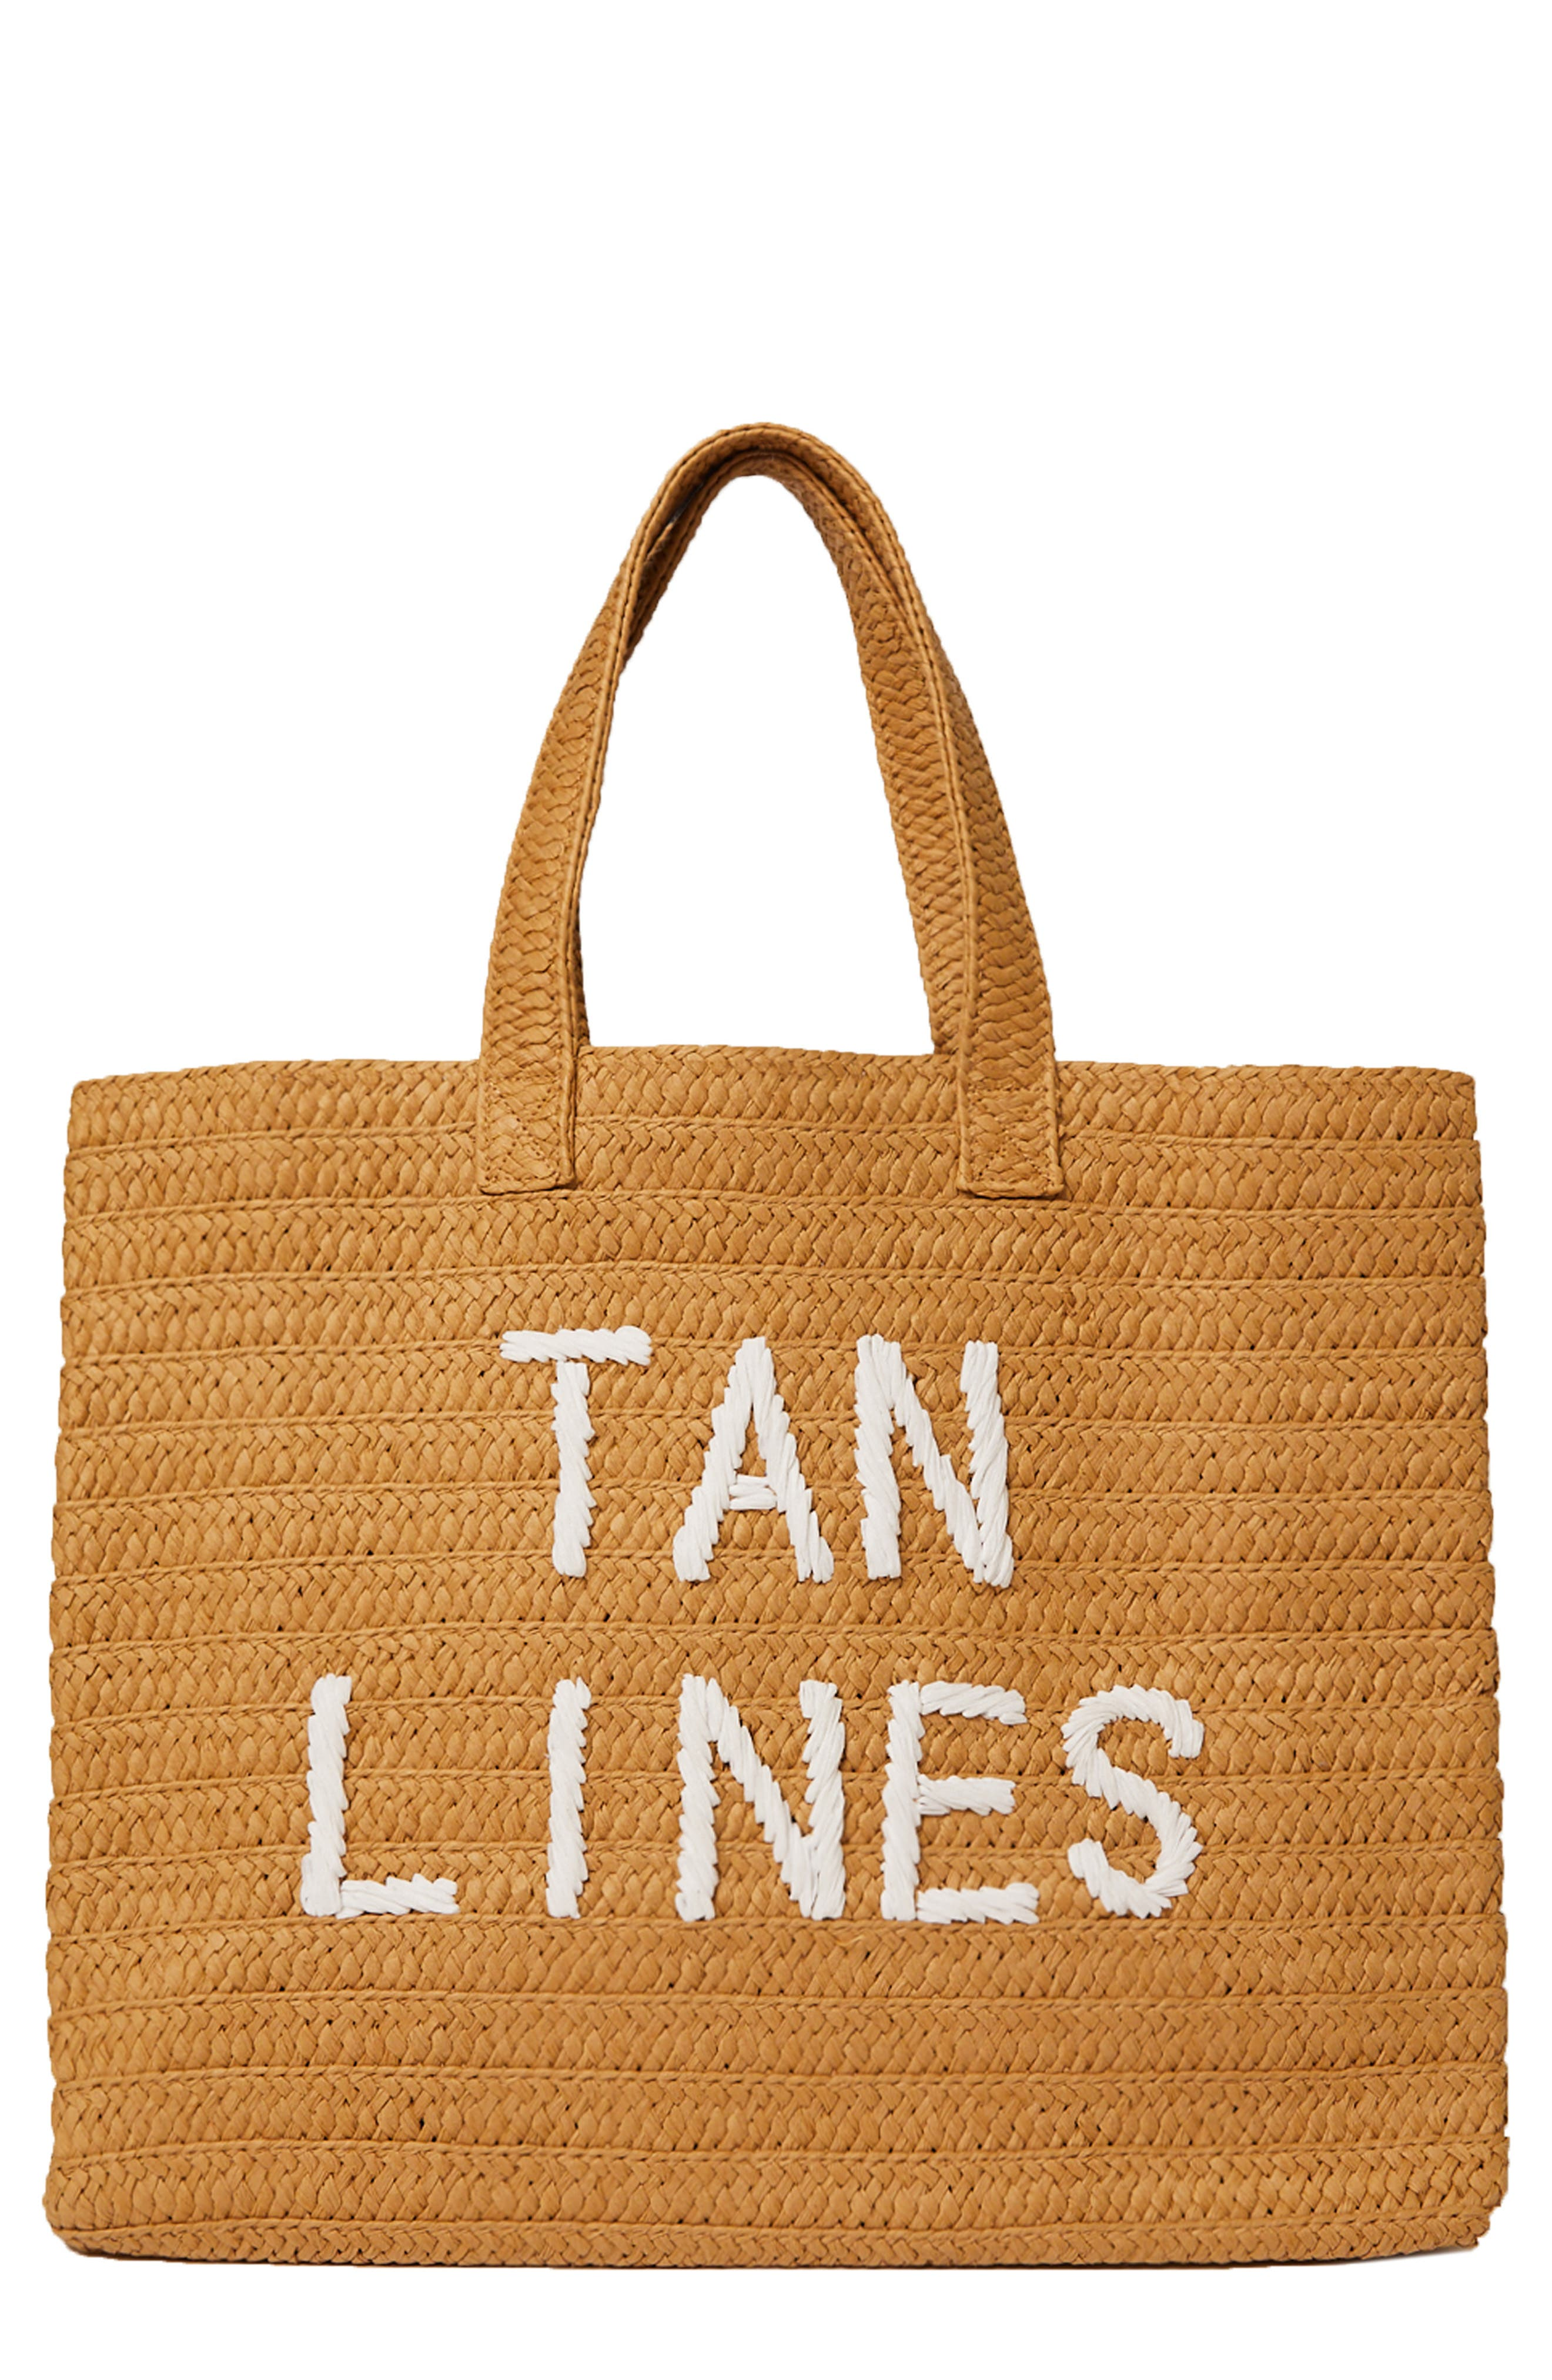 Tan Lines Straw Tote